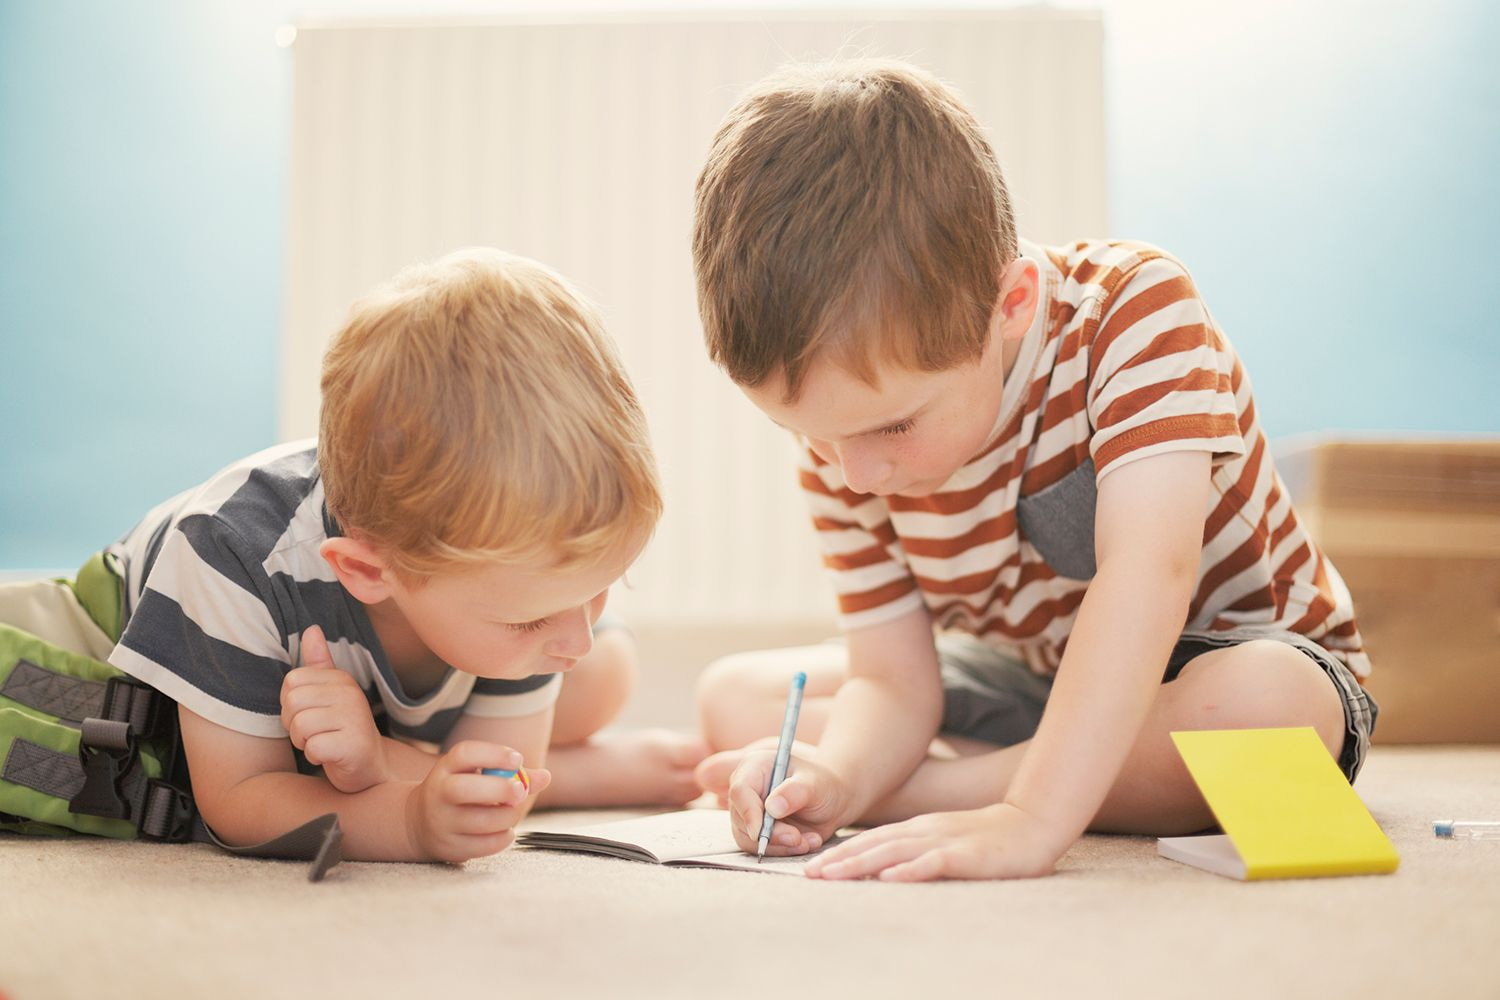 free easy crossword puzzles and word games for families